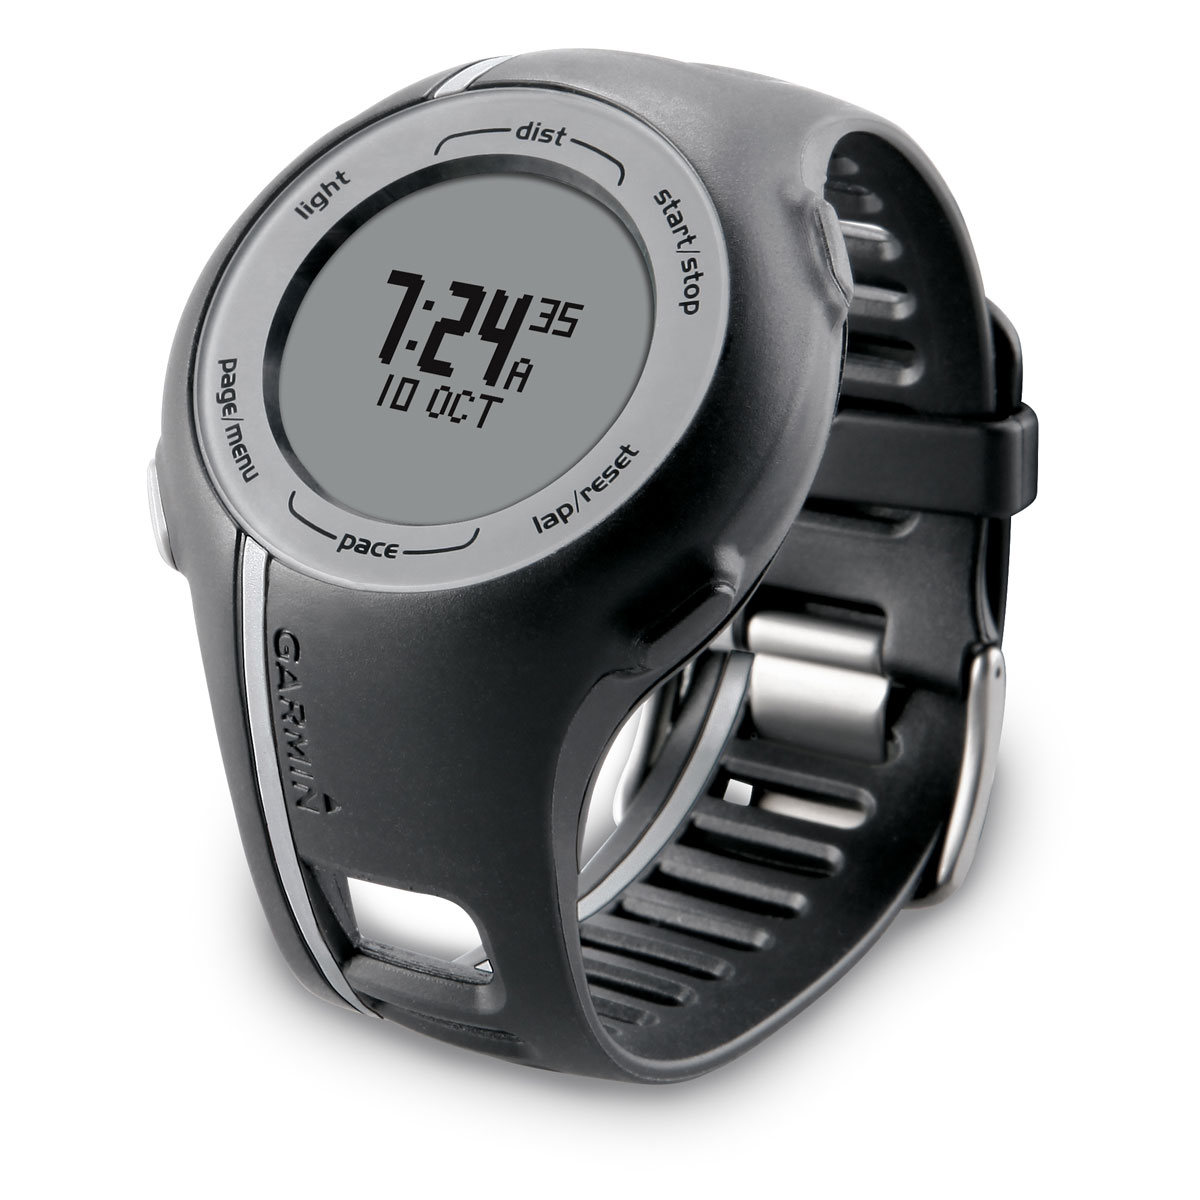 montre garmin forerunner 110 hrm homme. Black Bedroom Furniture Sets. Home Design Ideas